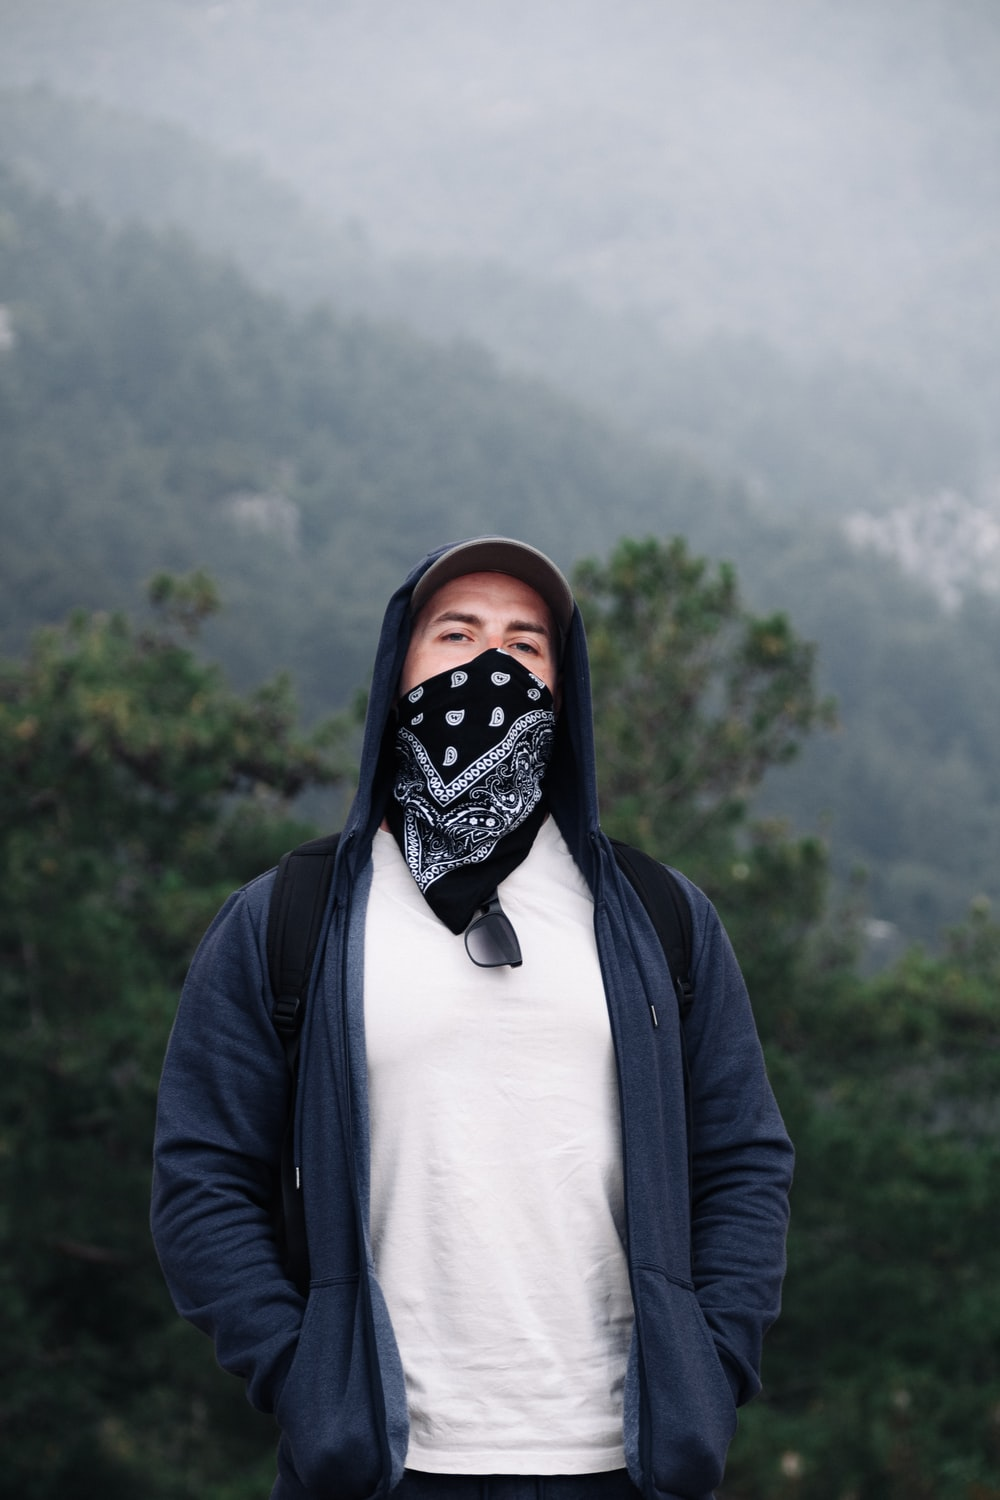 person in black and white mask and black jacket